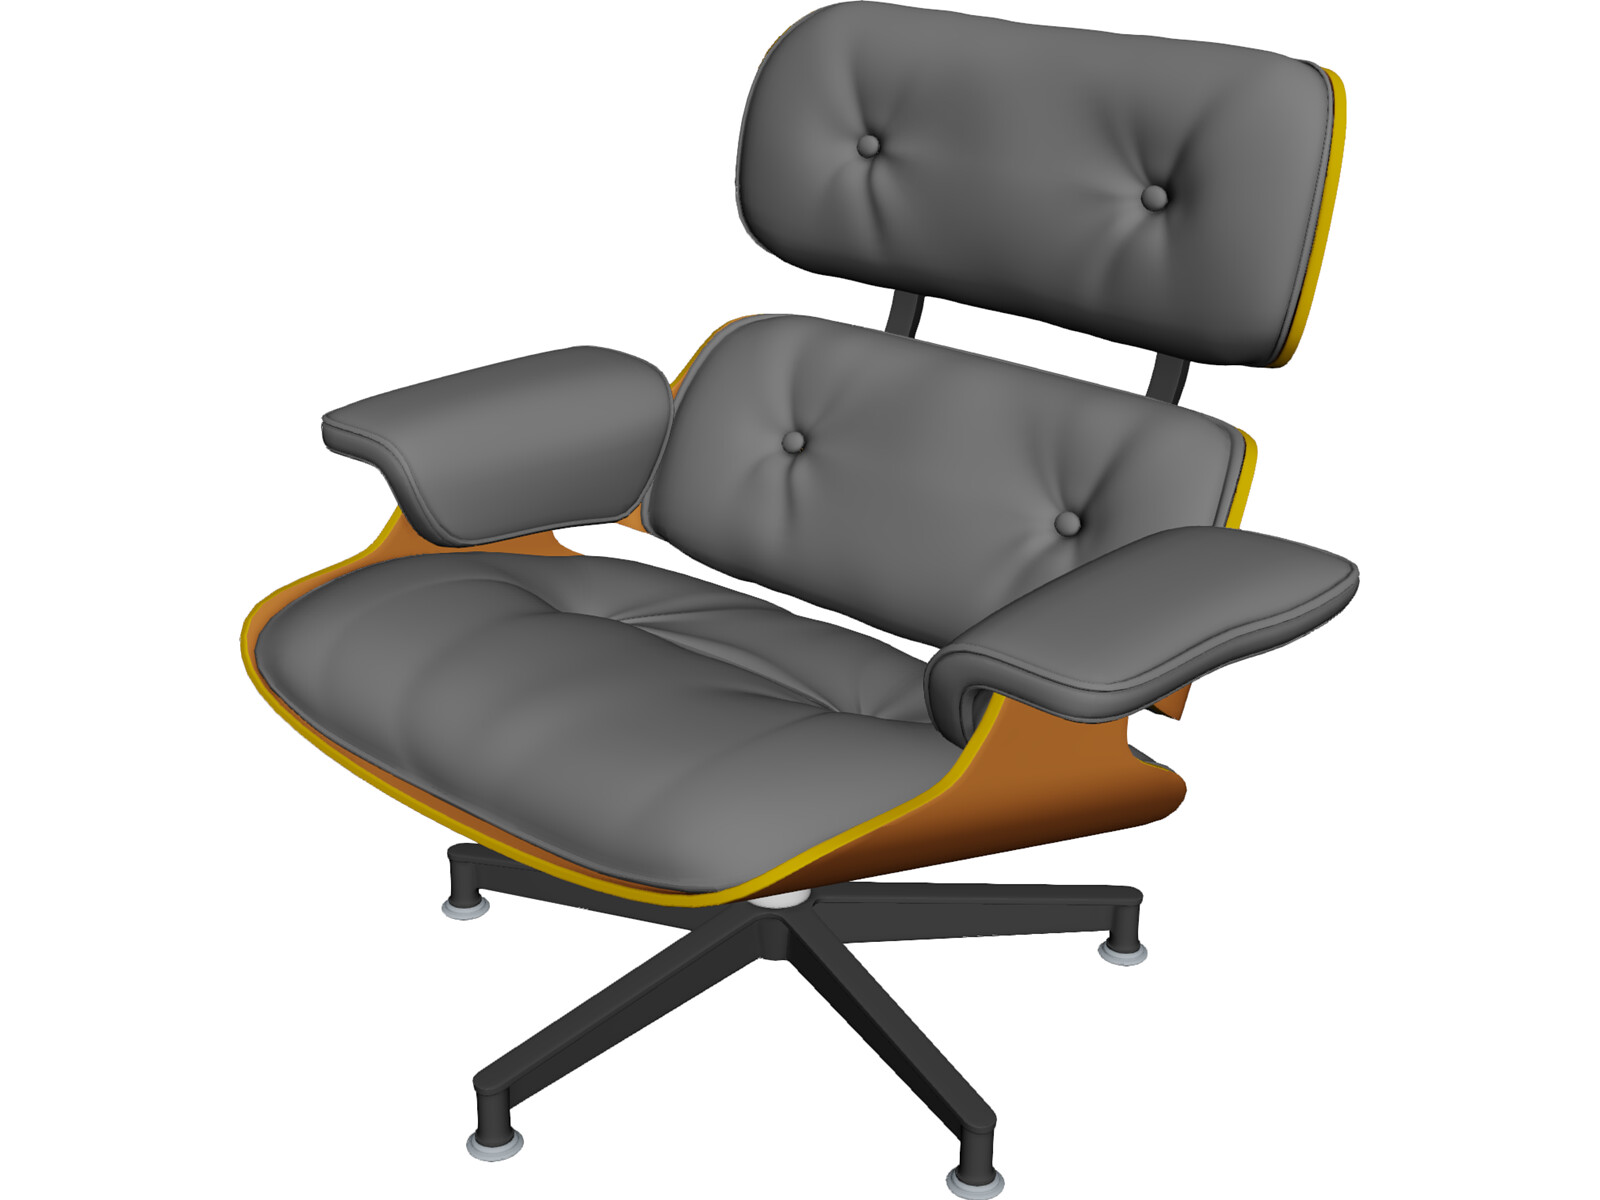 Eames Lounge Chair 3D Model Download 3D CAD Browser : 51366 from www.3dcadbrowser.com size 800 x 600 jpeg 41kB